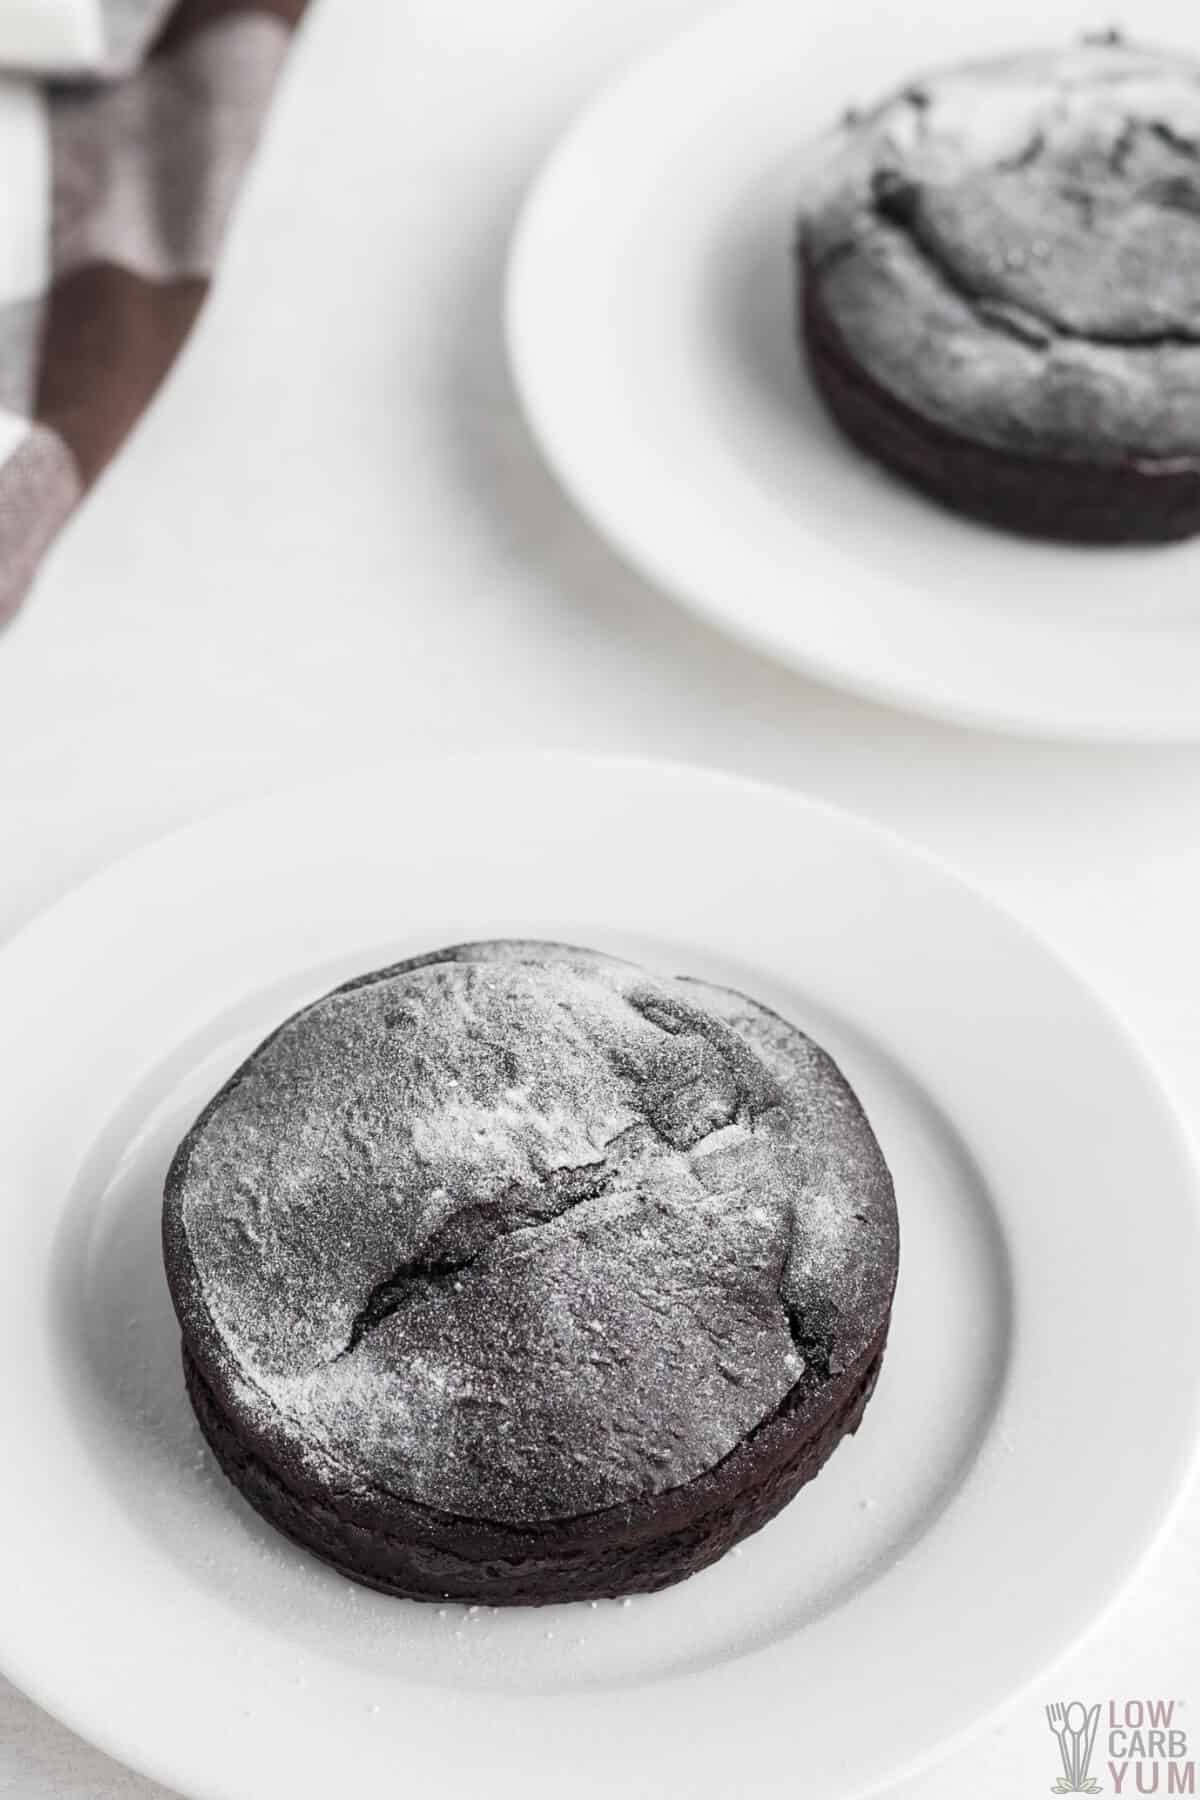 keto chocolate lava cakes dusted with powdered sweetener